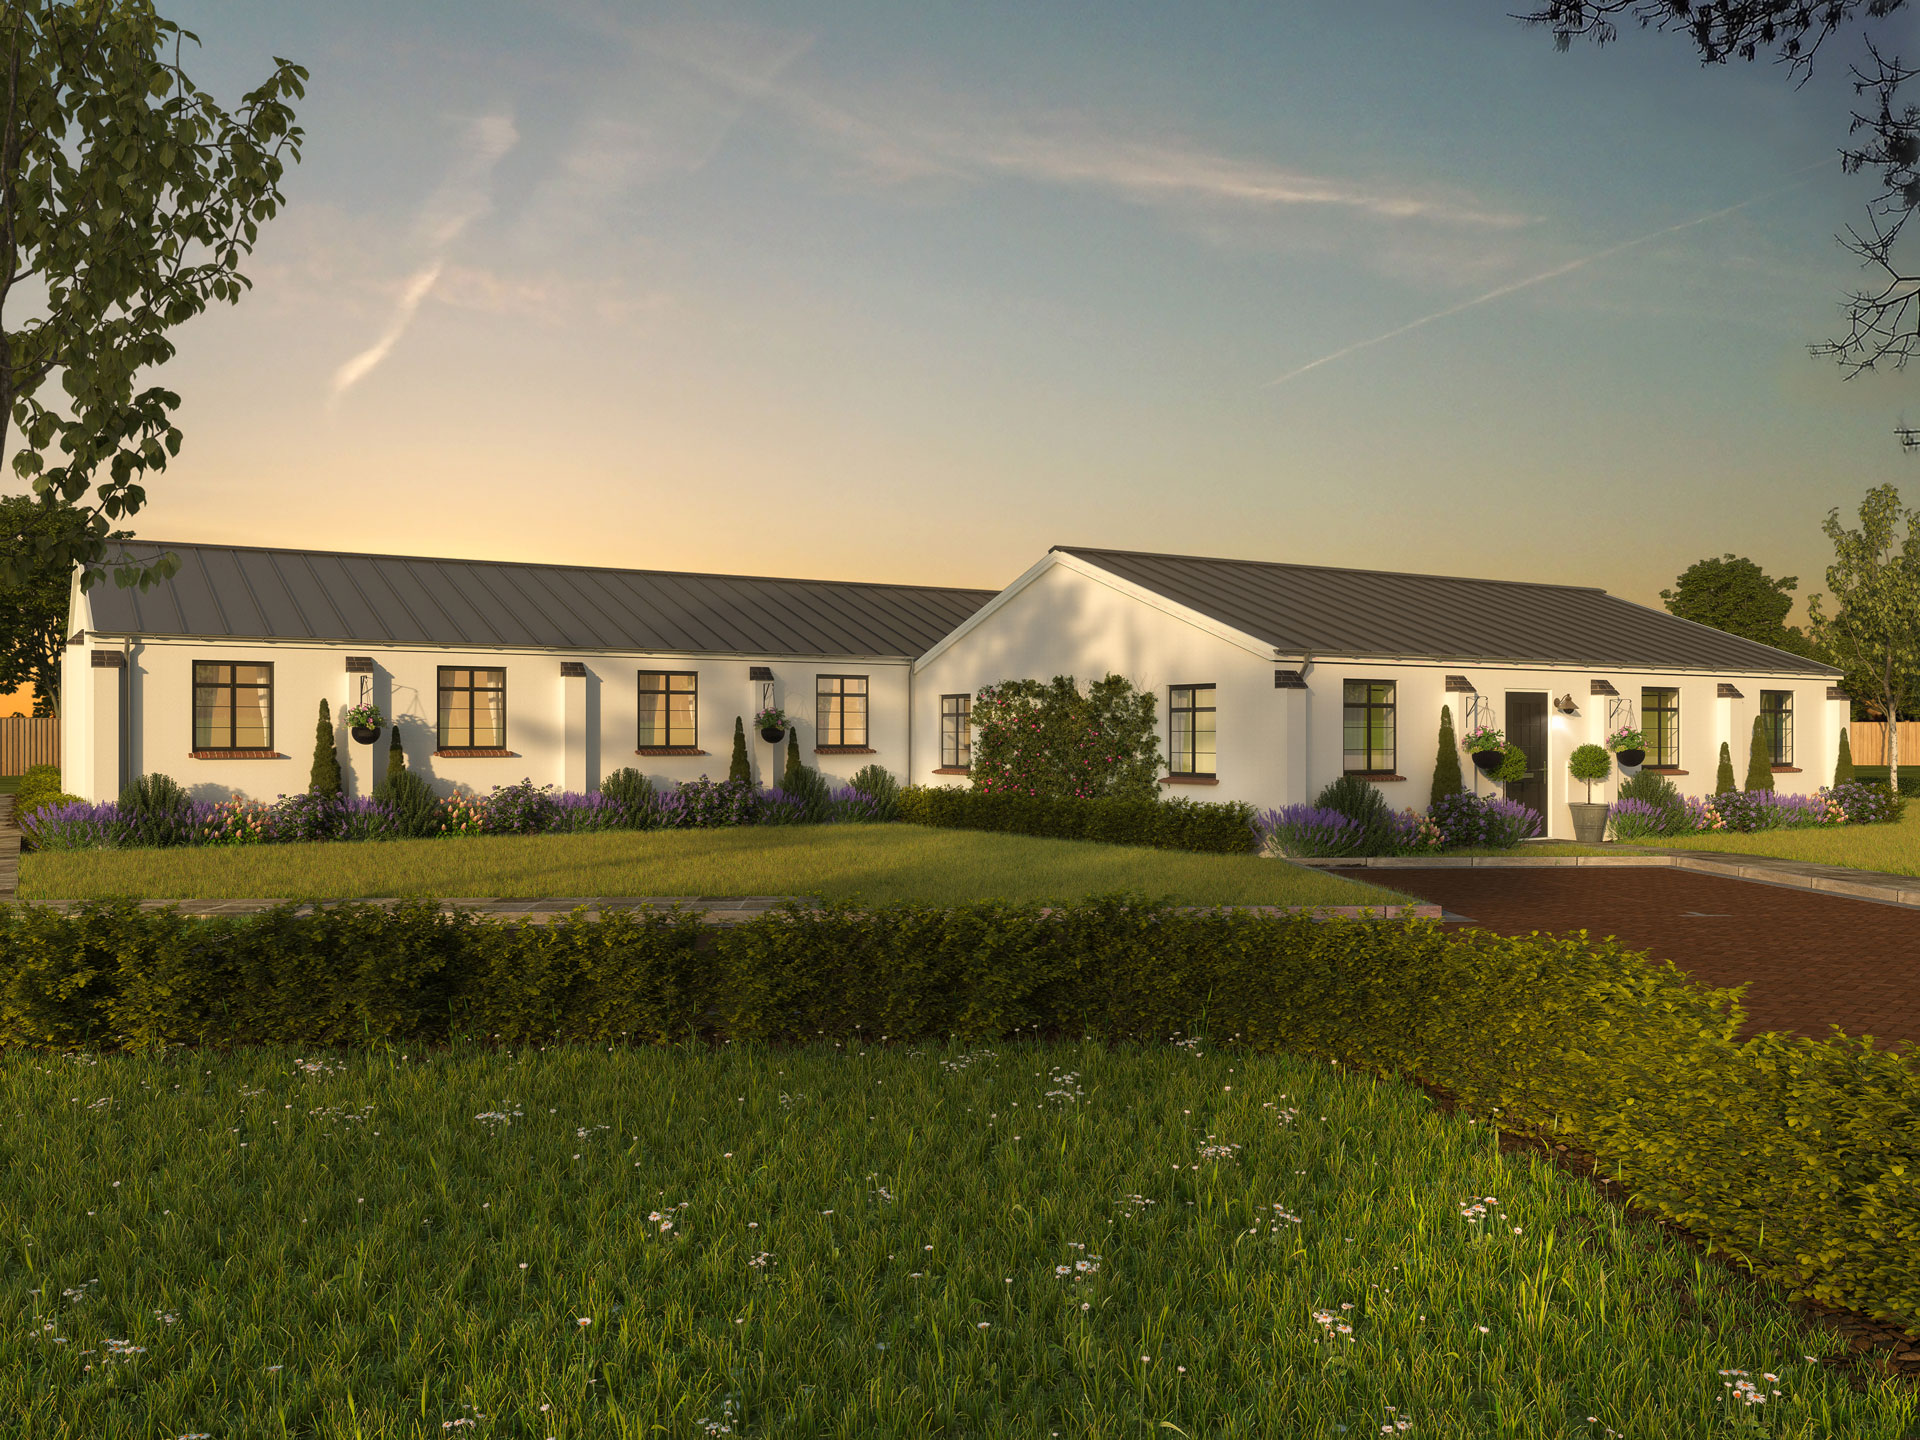 Pope's House,Chapel House &Moat House - 2 BEDROOM BUNGALOWHOMES 64, 65 & 66